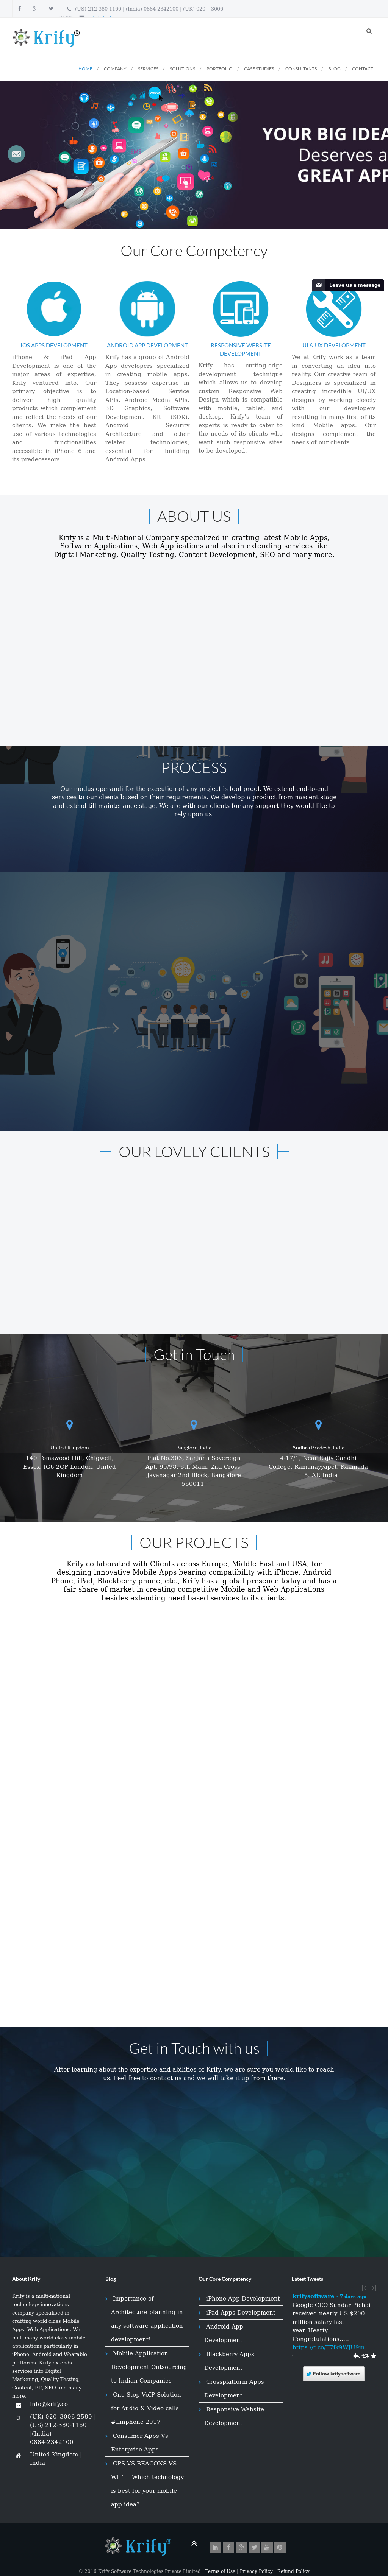 Krify Competitors, Revenue and Employees - Owler Company Profile